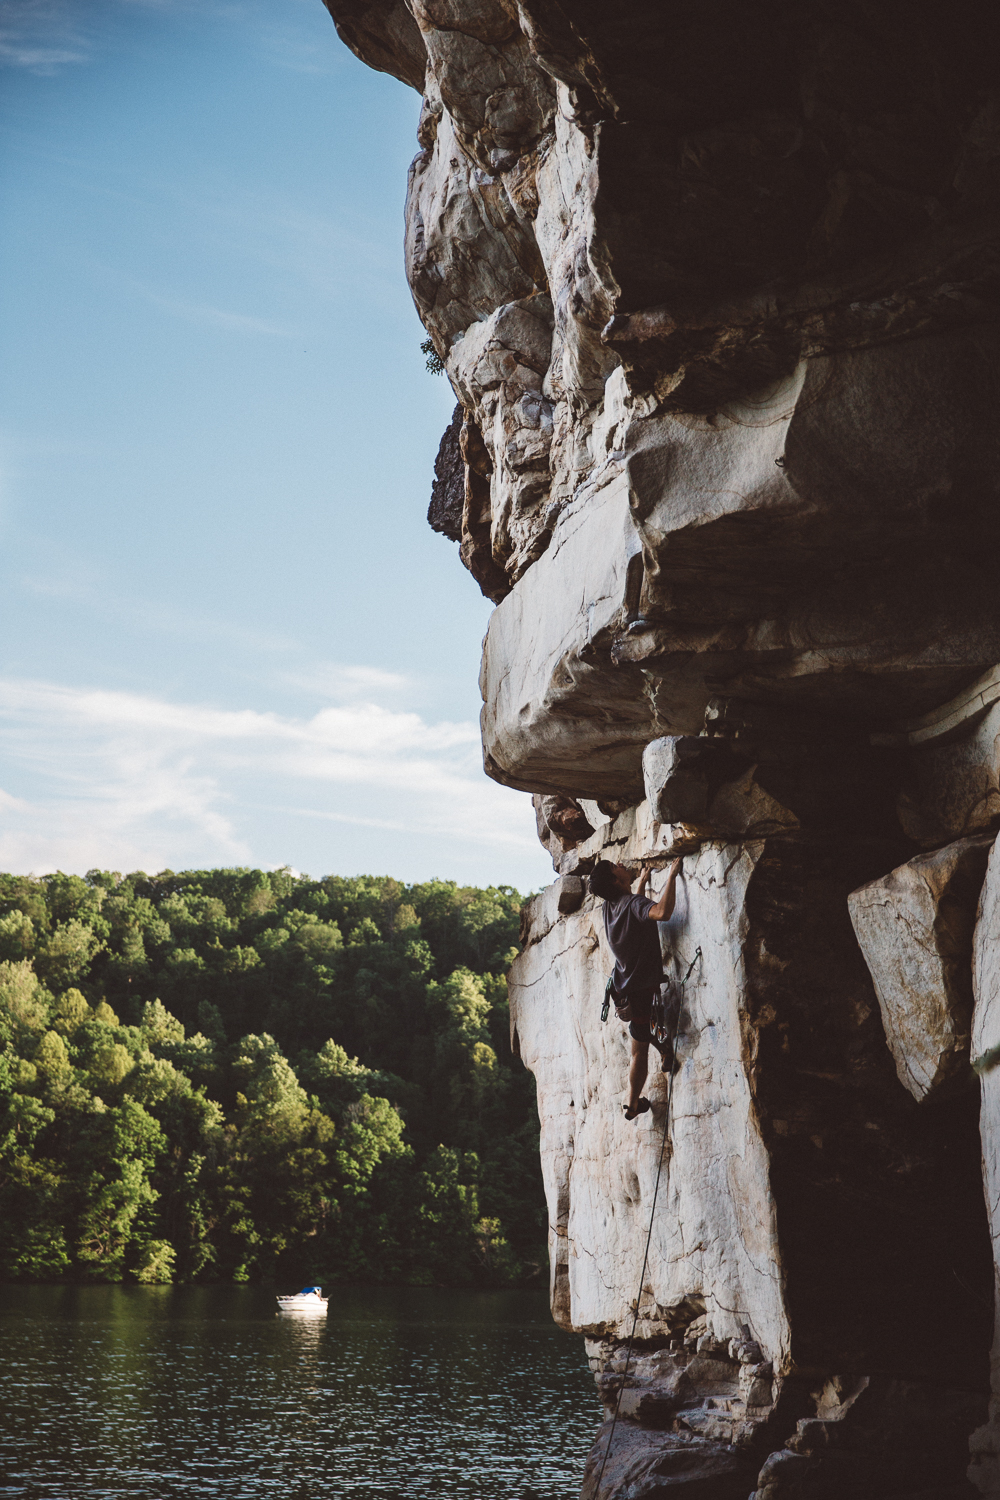 Alex Lin climbing a 5.12a route over Summerville Lake at the New River Gorge.